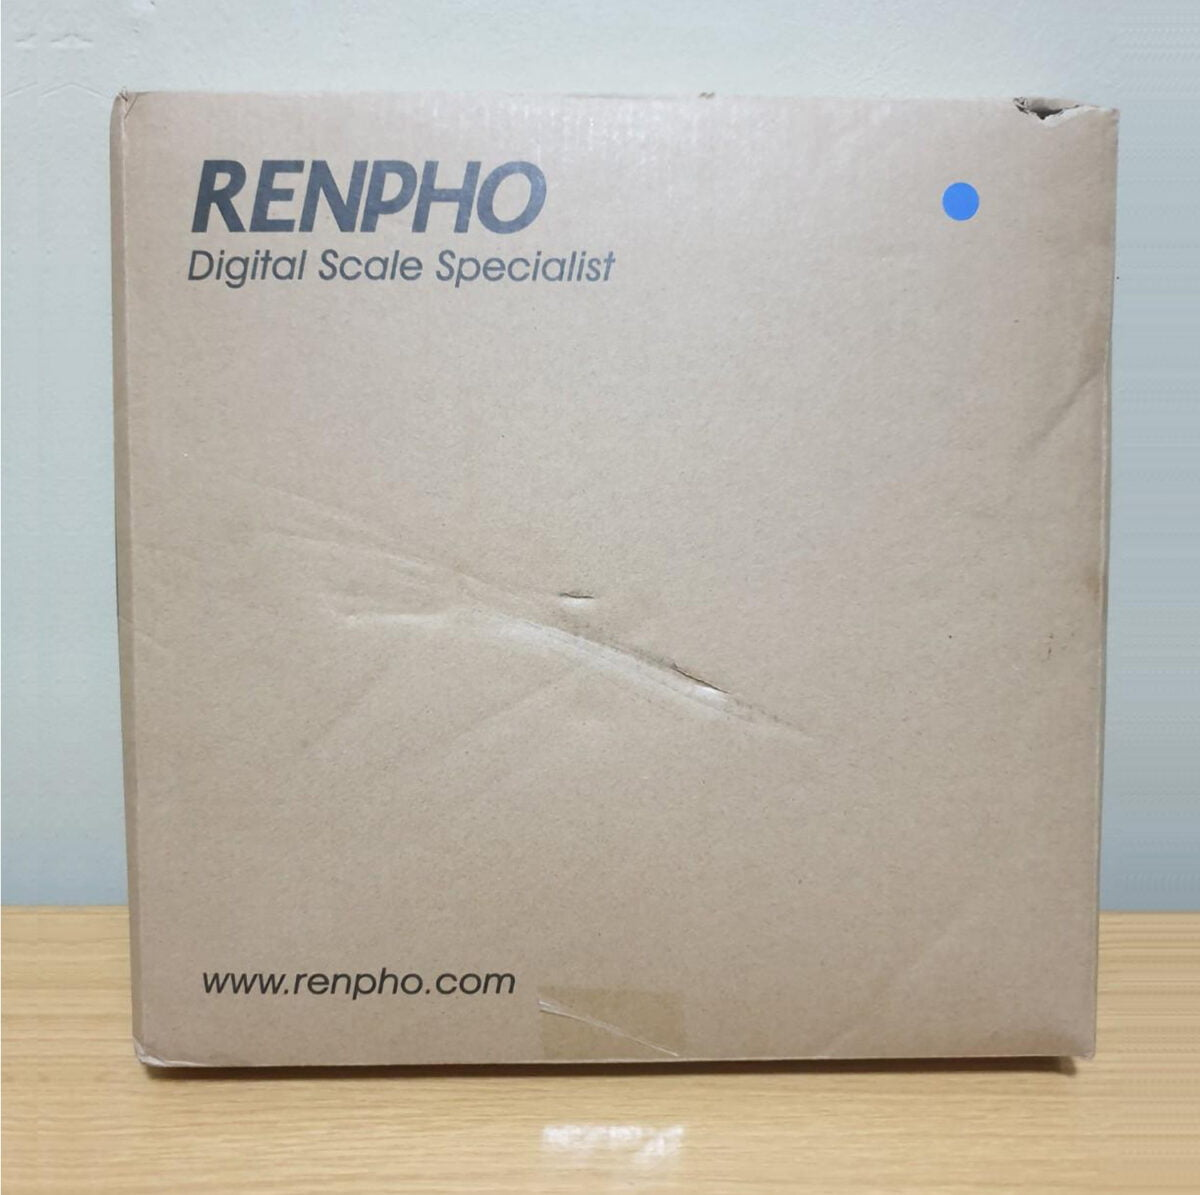 RENPHO Body Fat Scale Review boxed